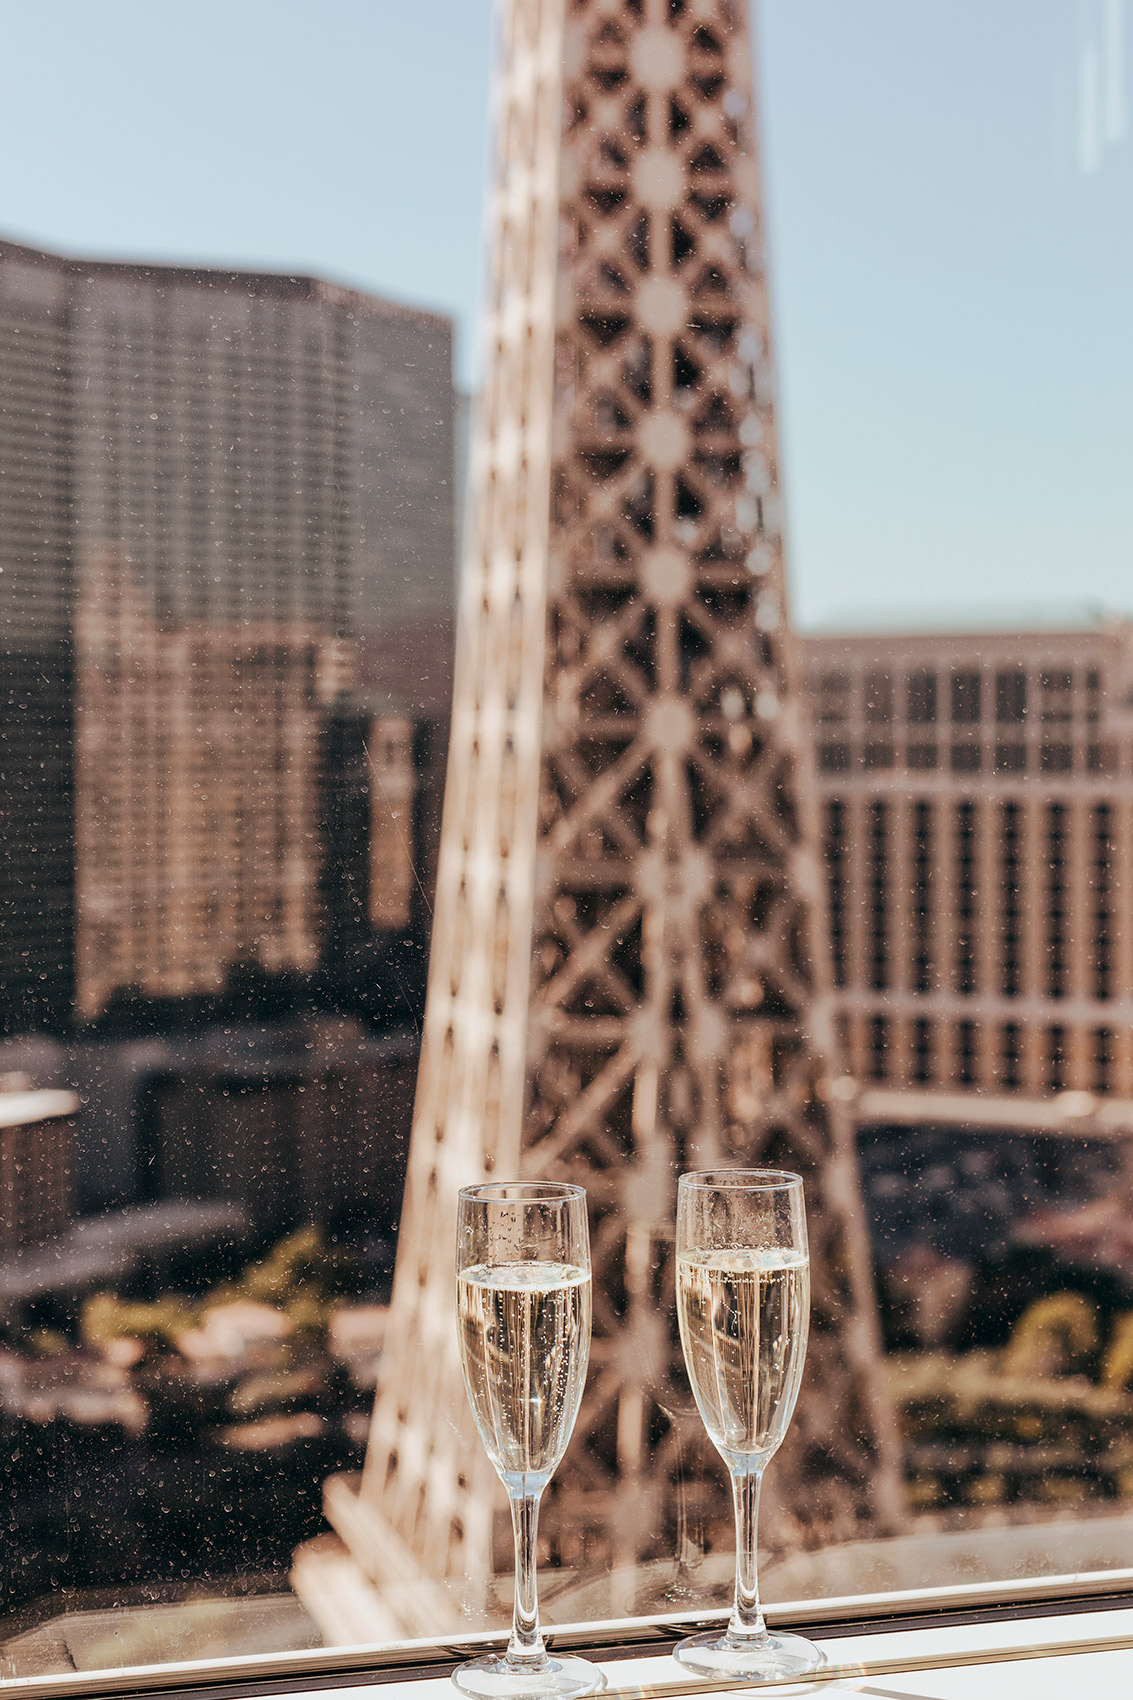 Glasses of Champagne at the Paris Hotel in Las Vegas - Kimberly Genevieve lifestyle photographer Los Angeles